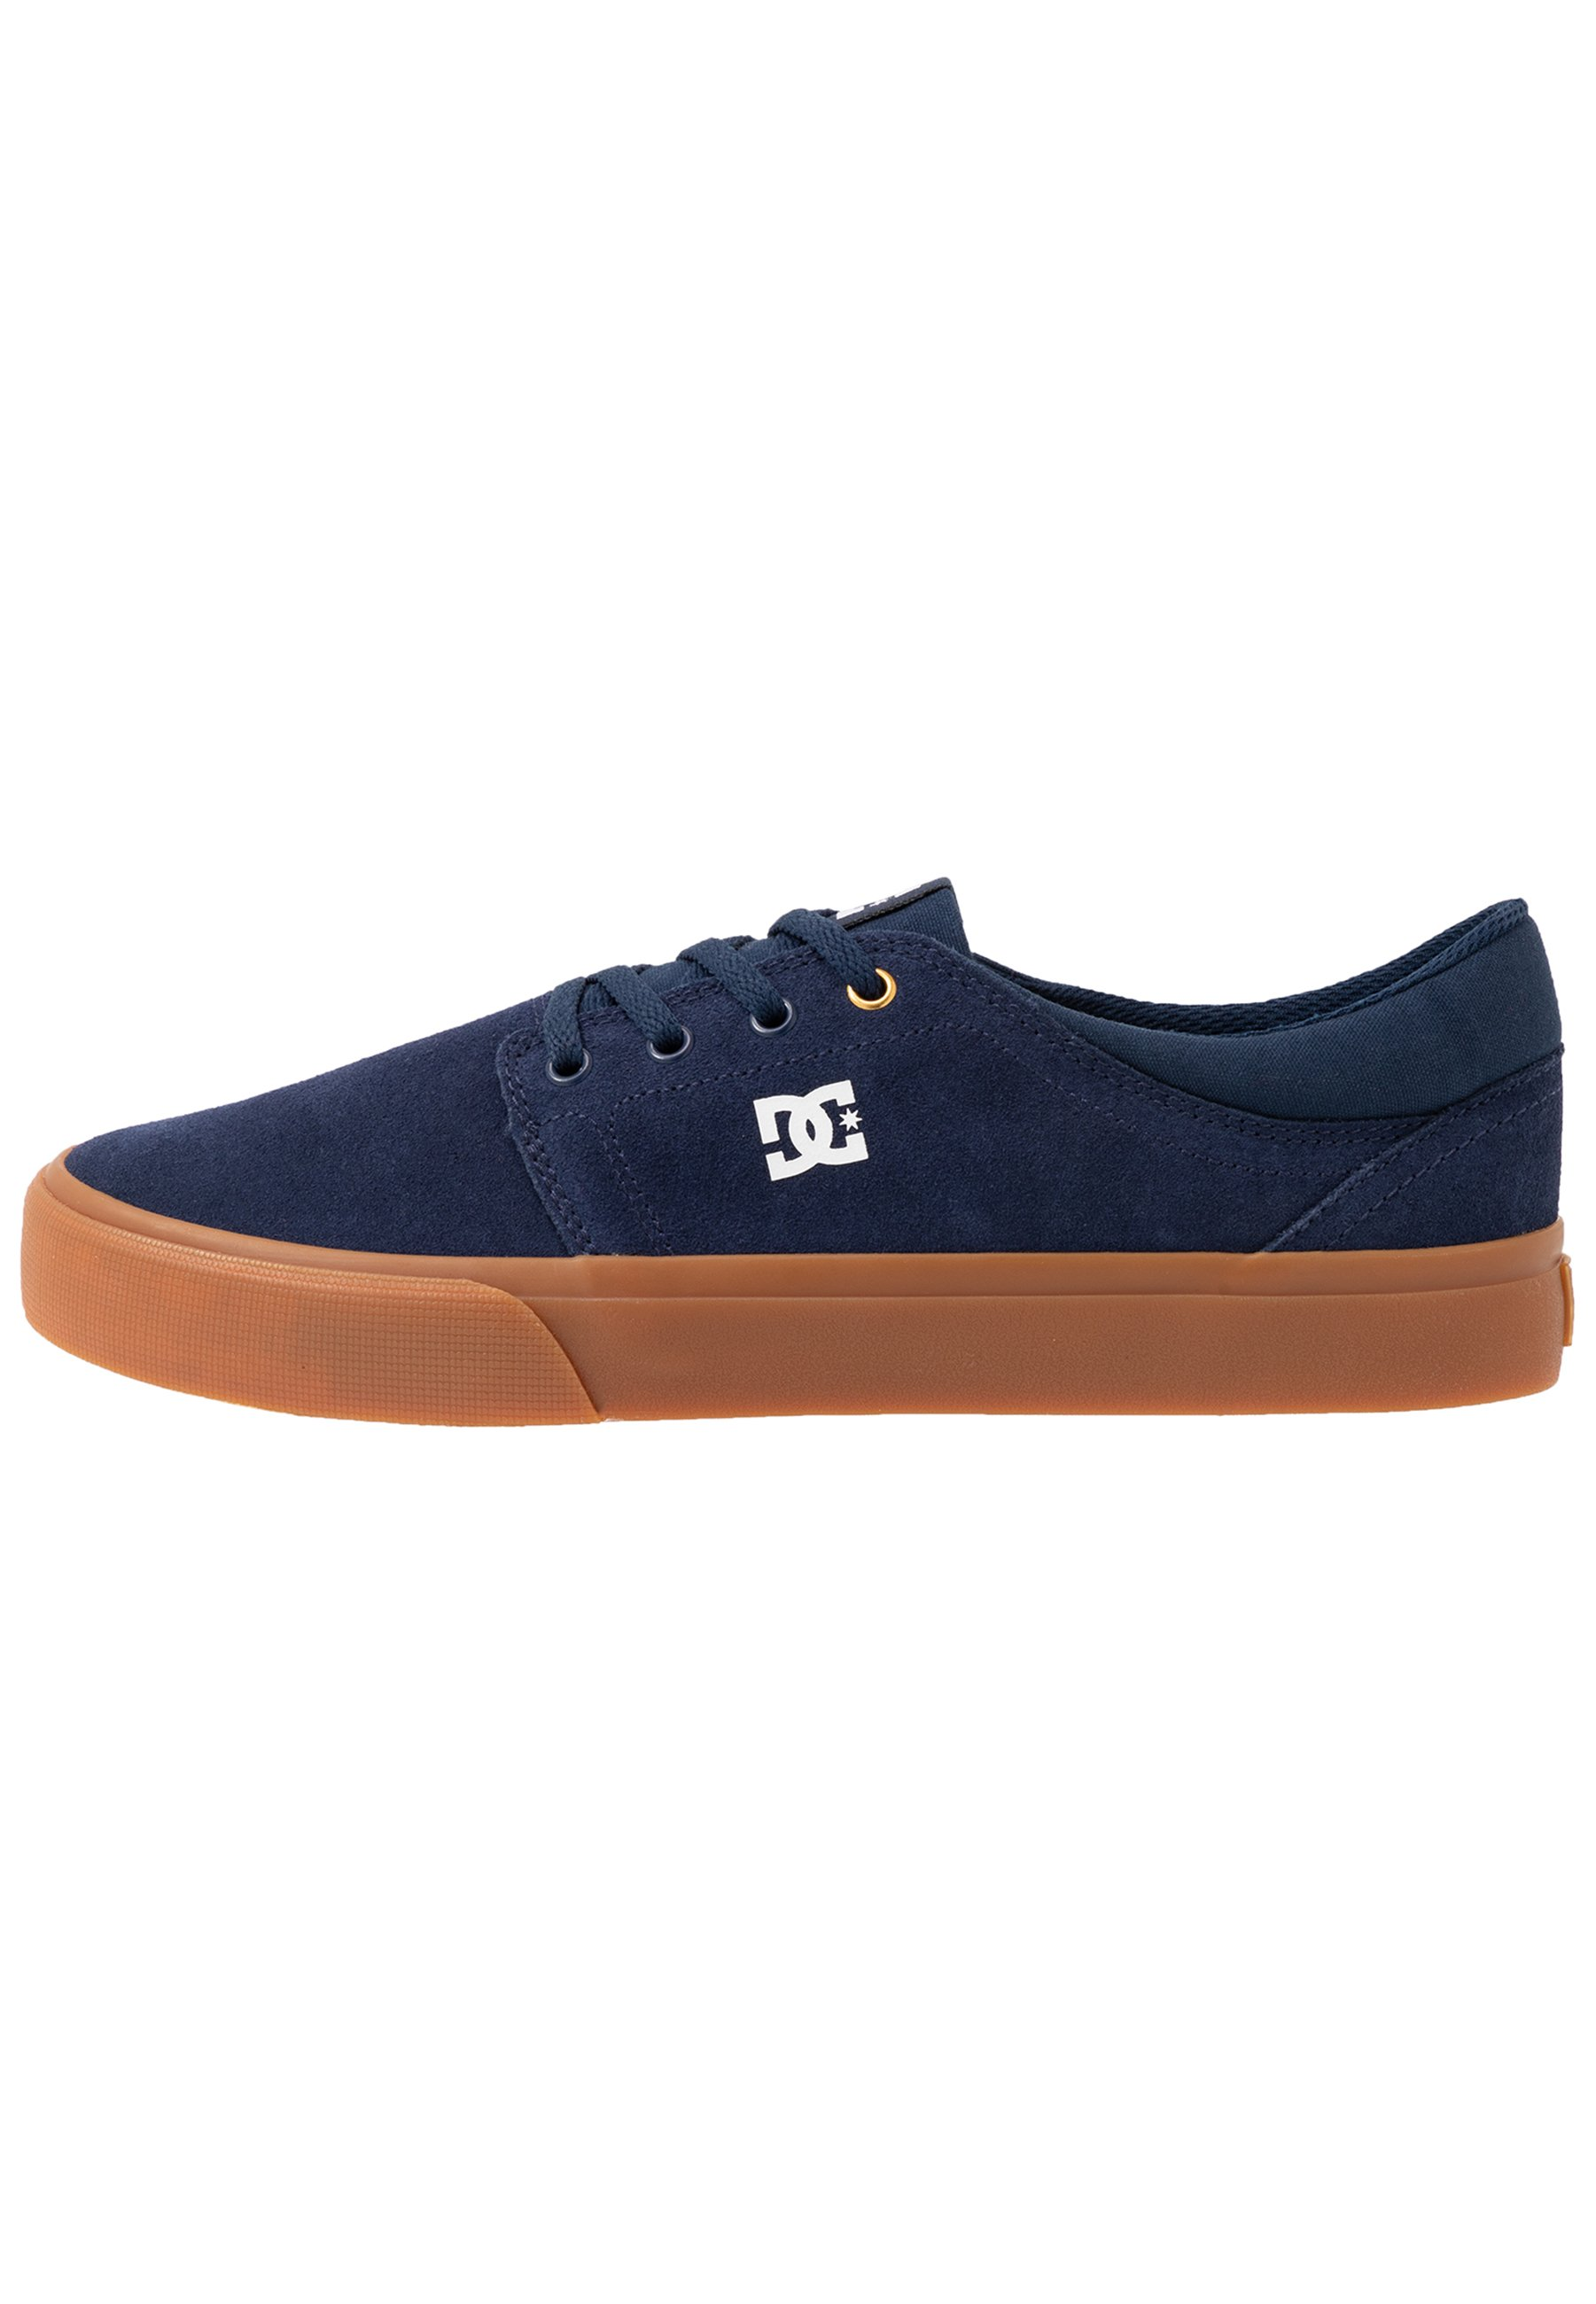 Homme TRASE - Baskets basses - navy